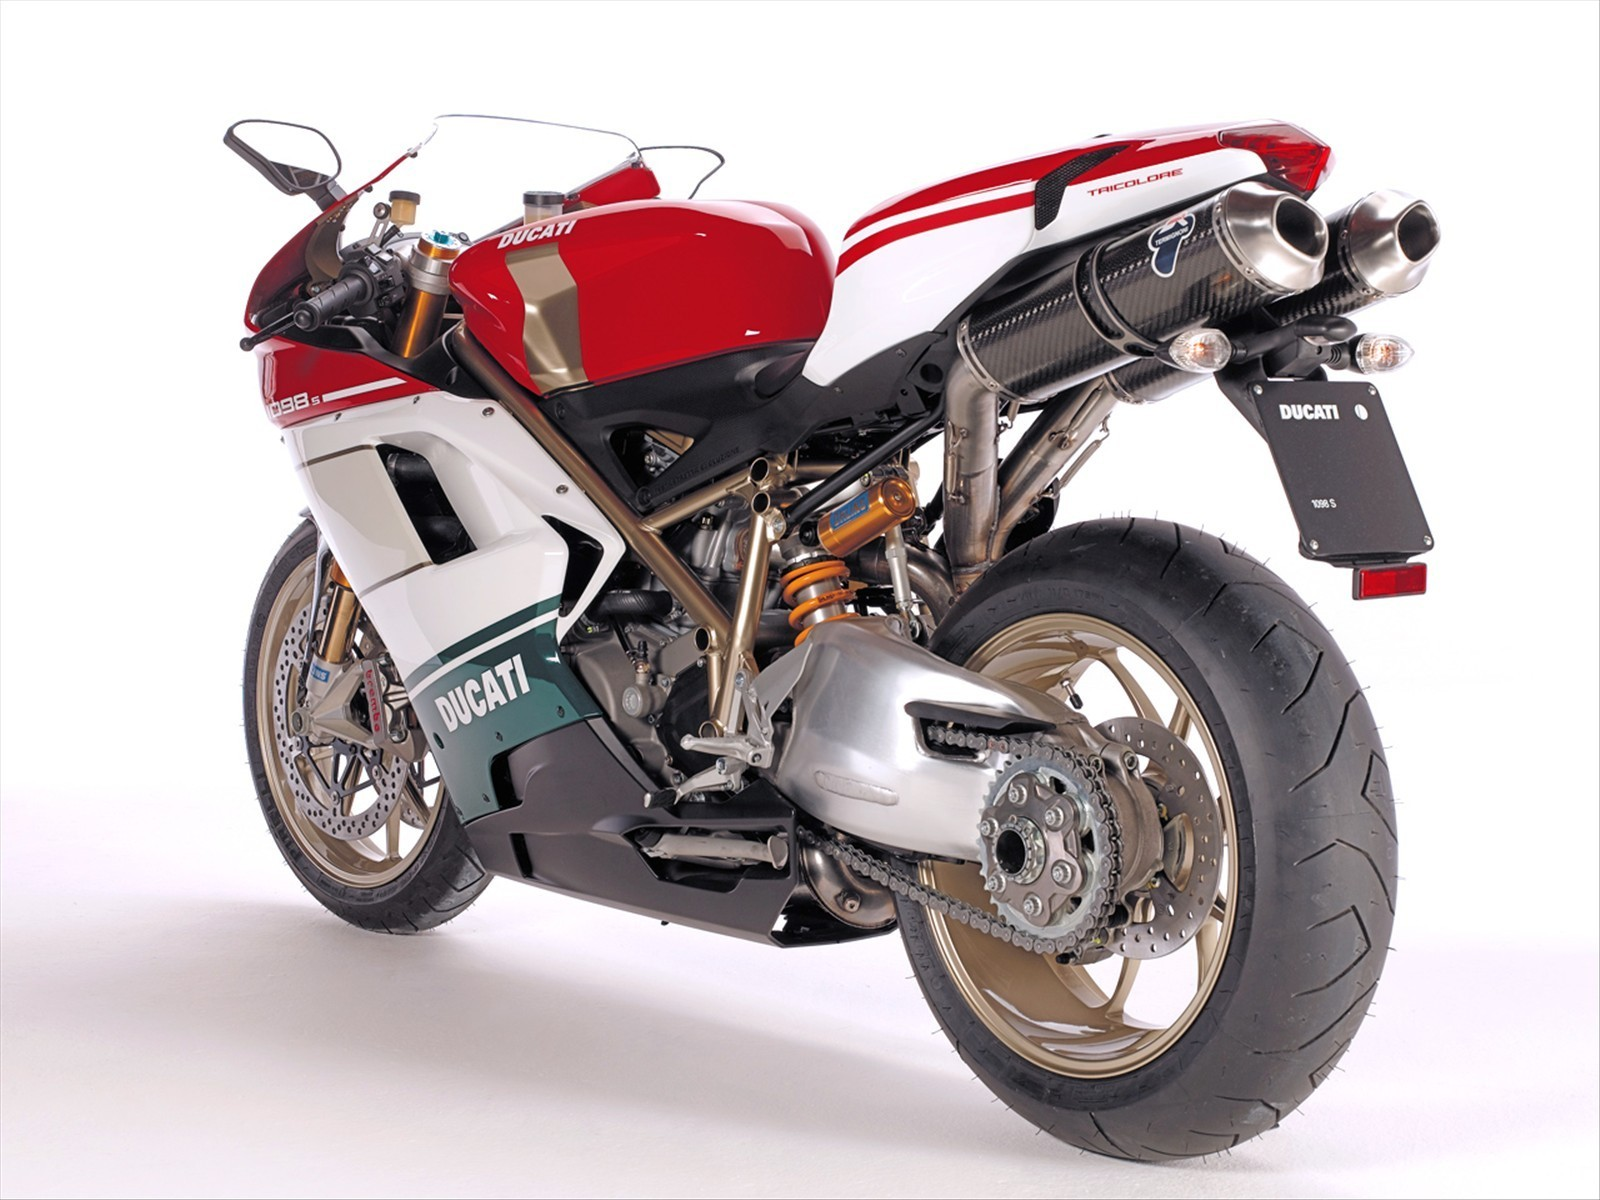 Ducati Entertainment System